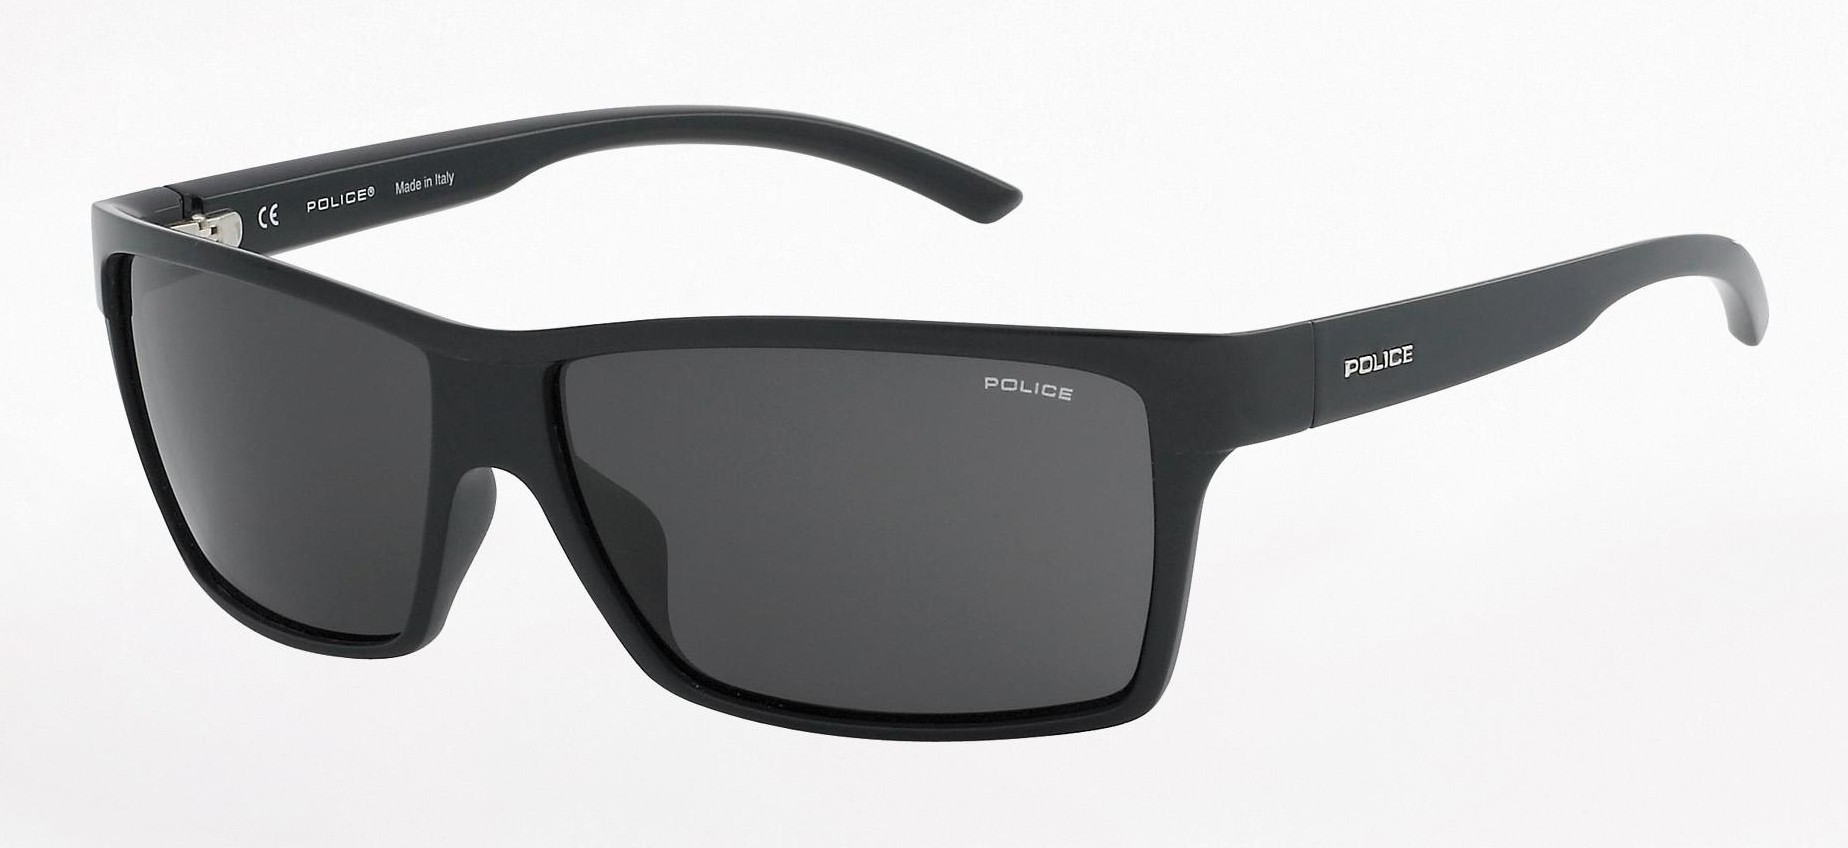 6abaa28d80dc Sunglasses Police Store